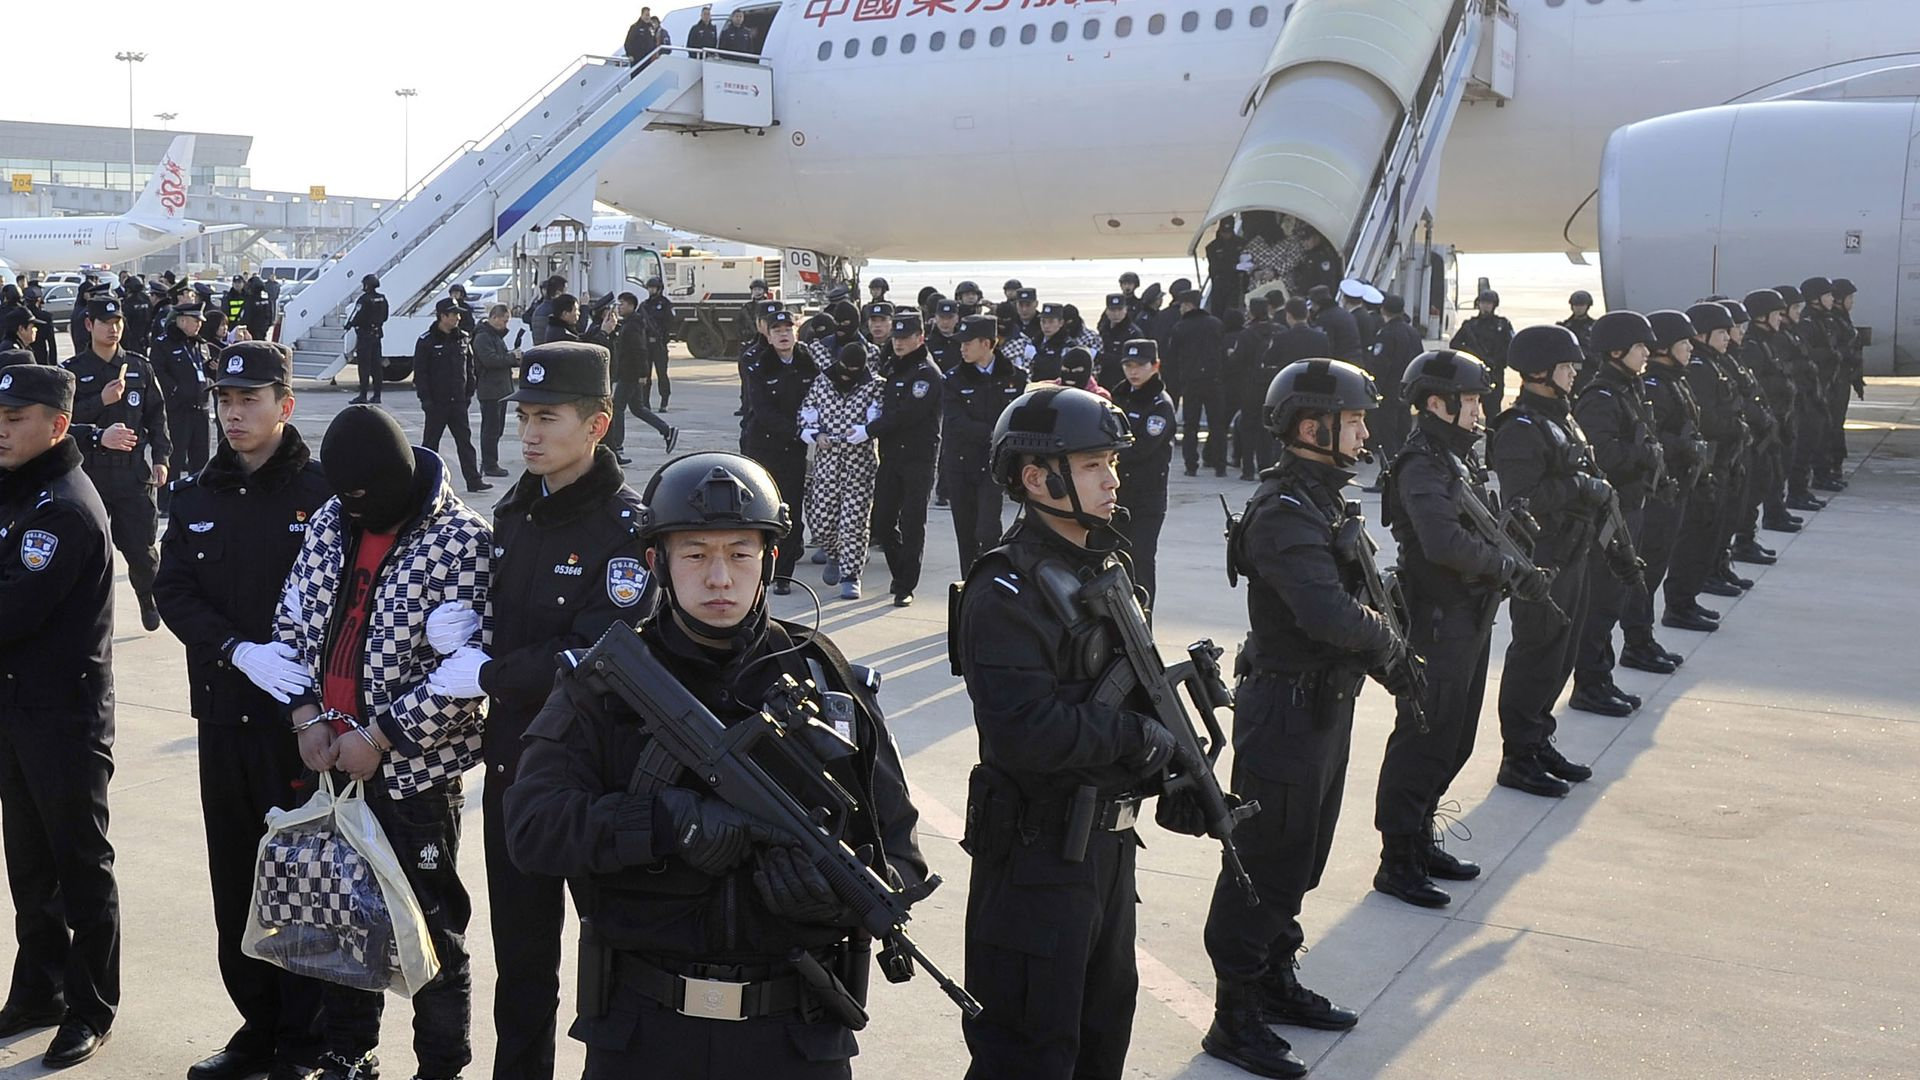 104 telecom fraud suspects returned to China under police escort at airport strip.